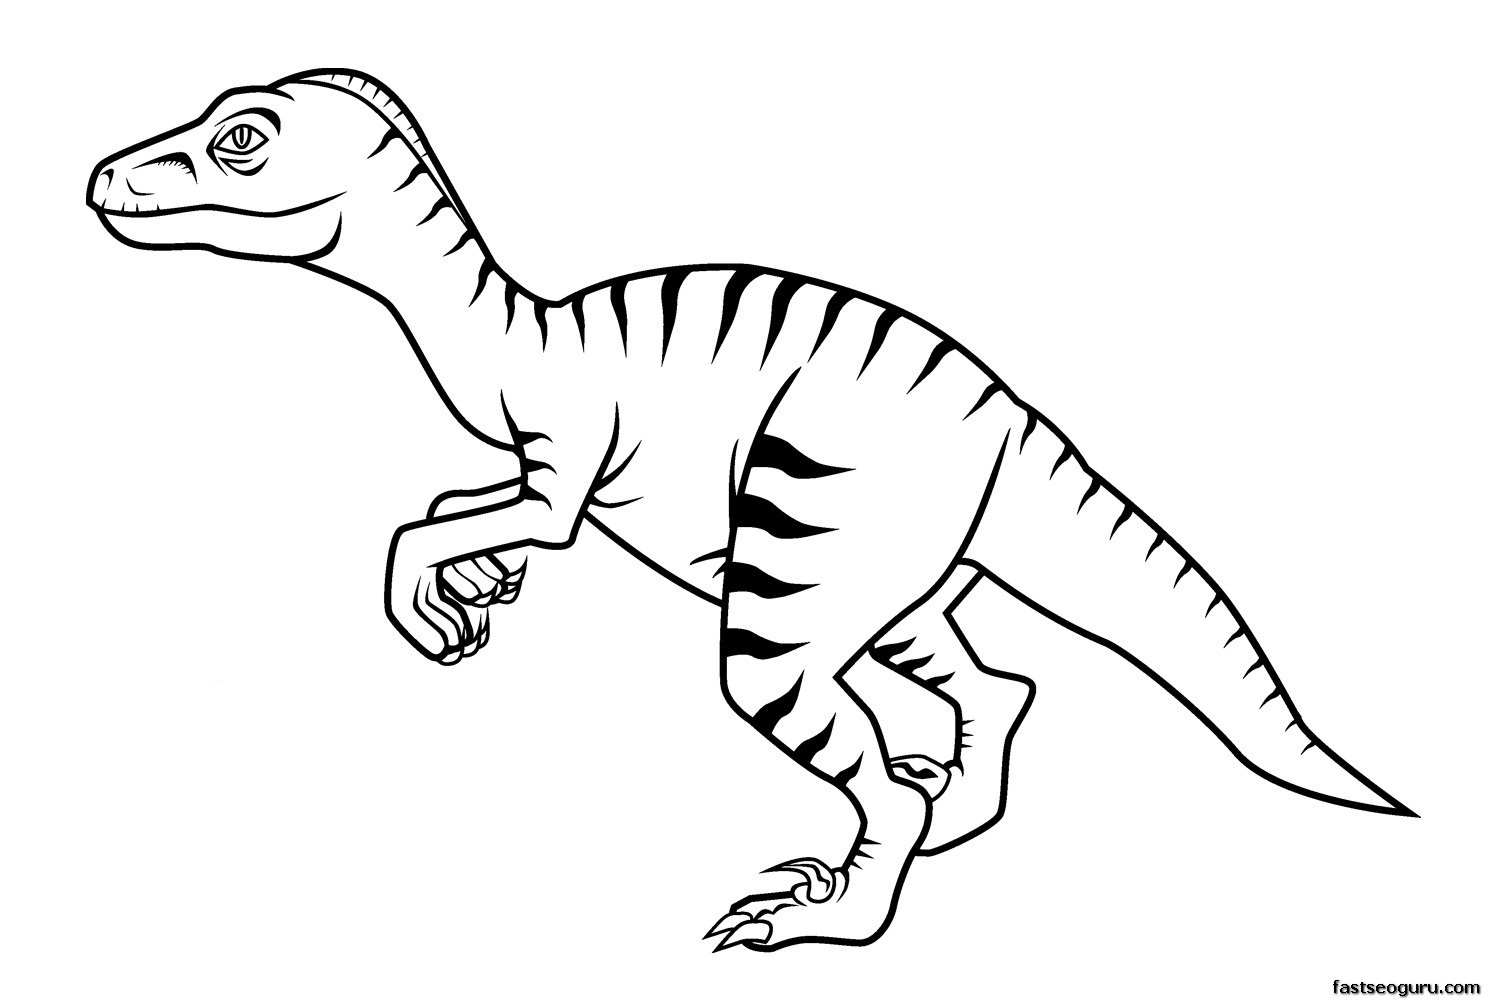 Printable coloring pages dinosaurs - Dinosaur Color Pages